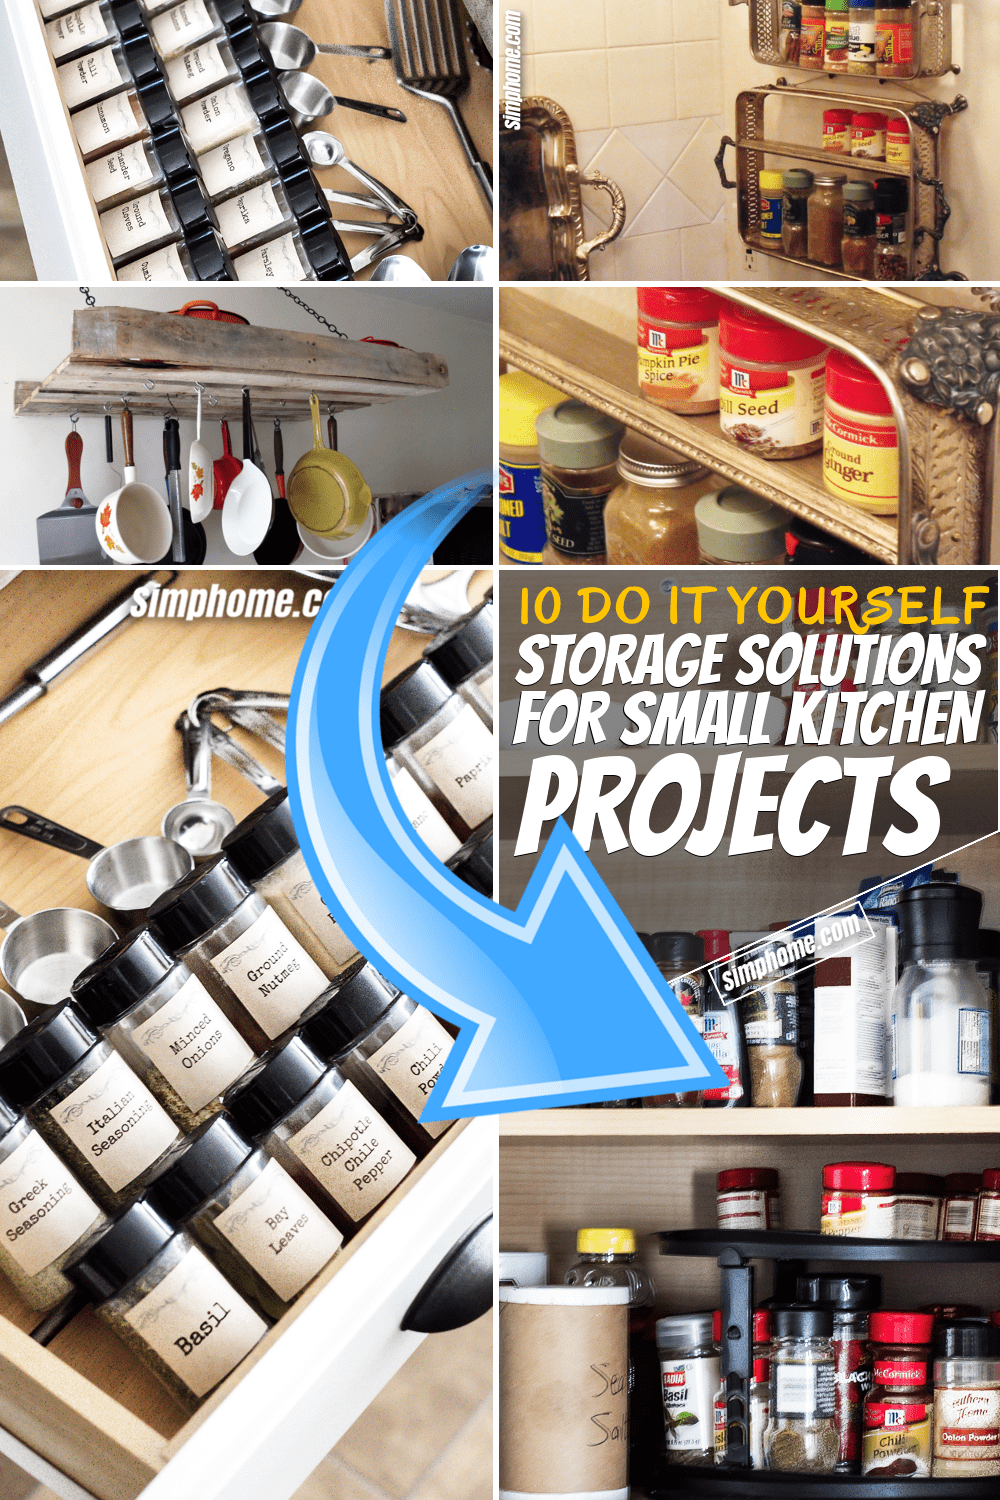 Simphome.com 10 DIY Storage Solution Projects for Small Kitchens Pinterest Featured Image